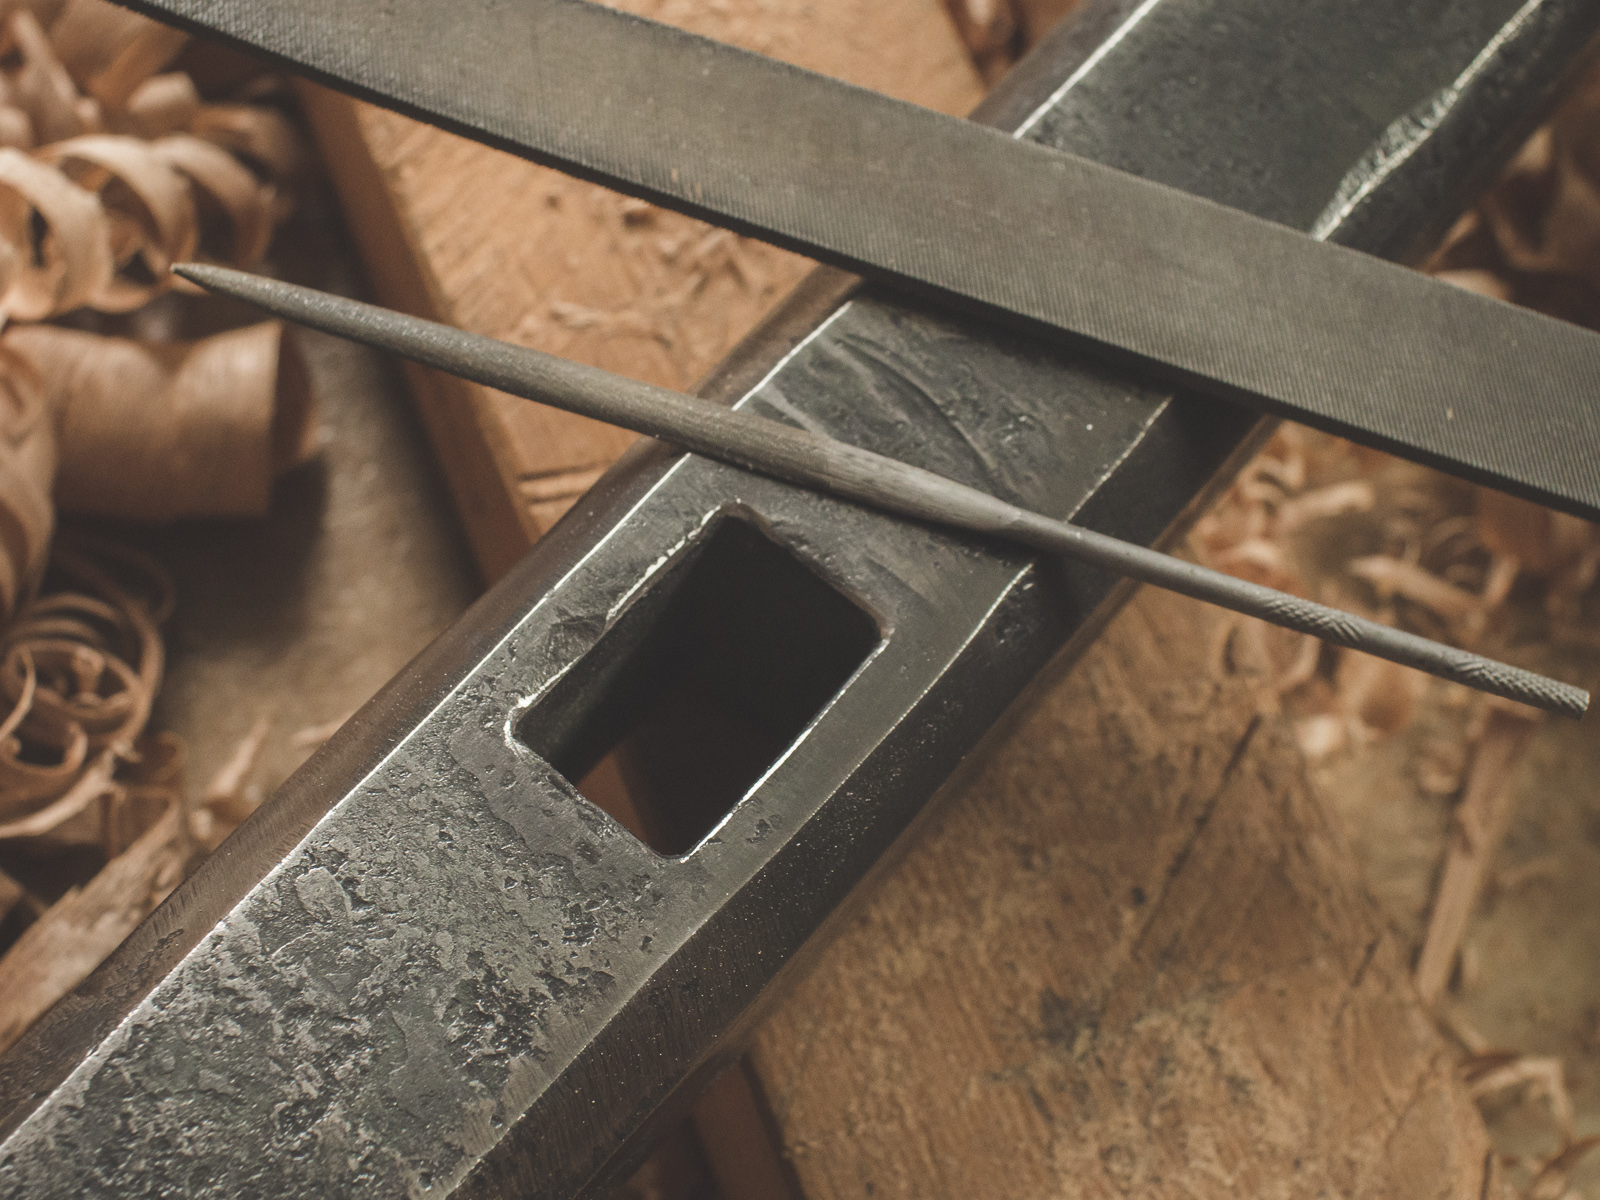 Island Blacksmith: Traditionally crafted knives from reclaimed steel.